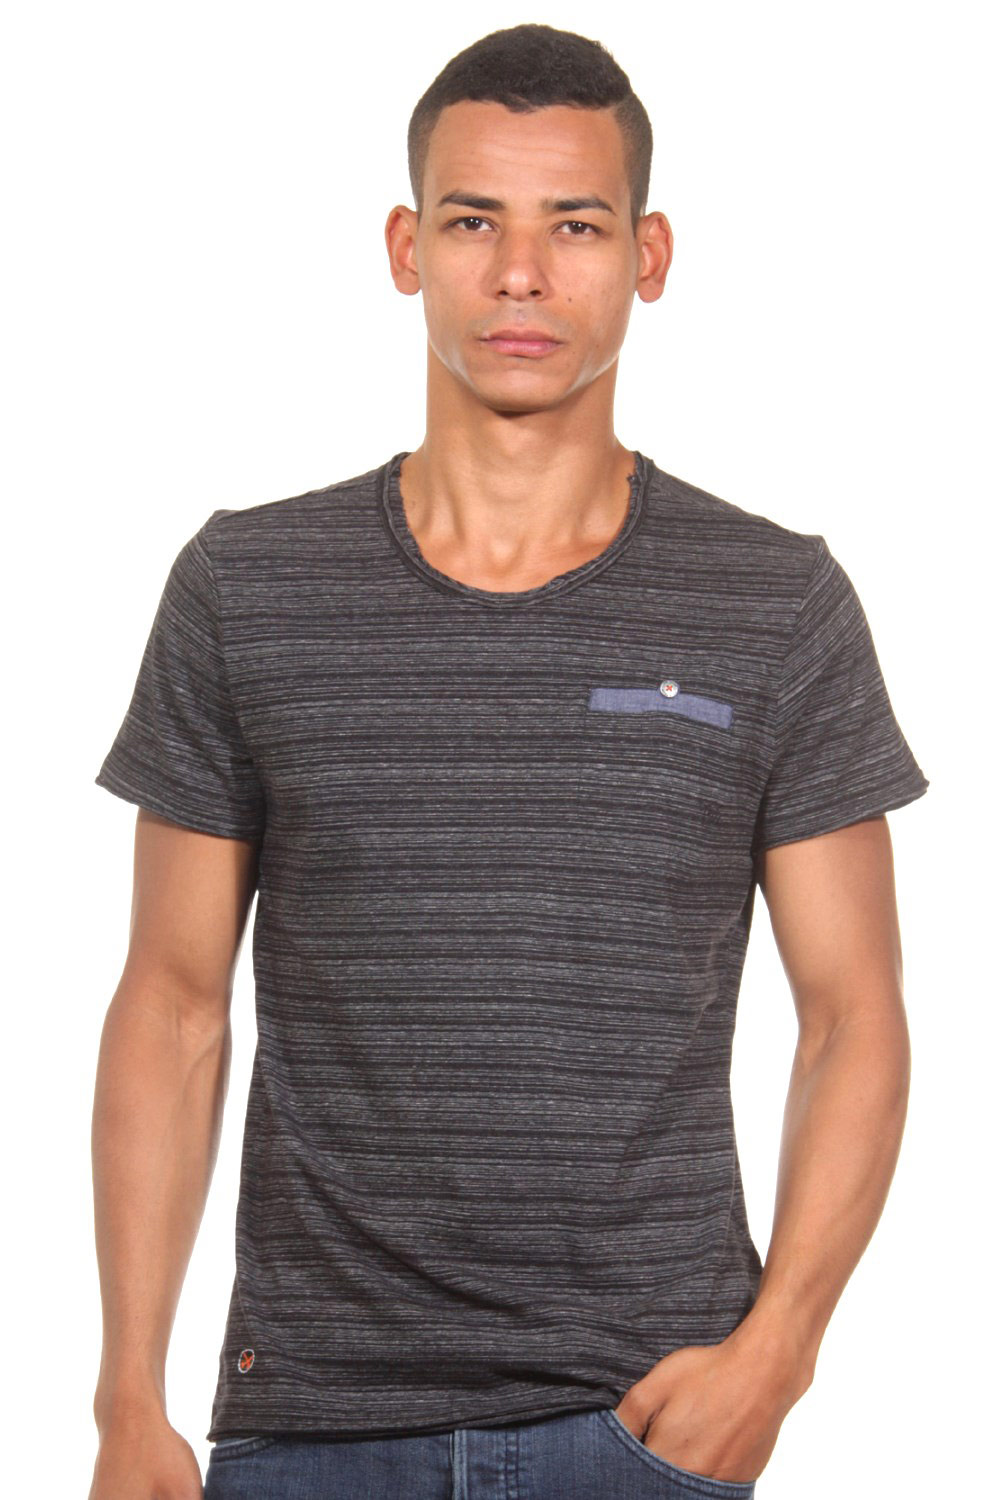 TOM TAILOR POLO TEAM T-Shirt Rundhals slim fit auf oboy.de